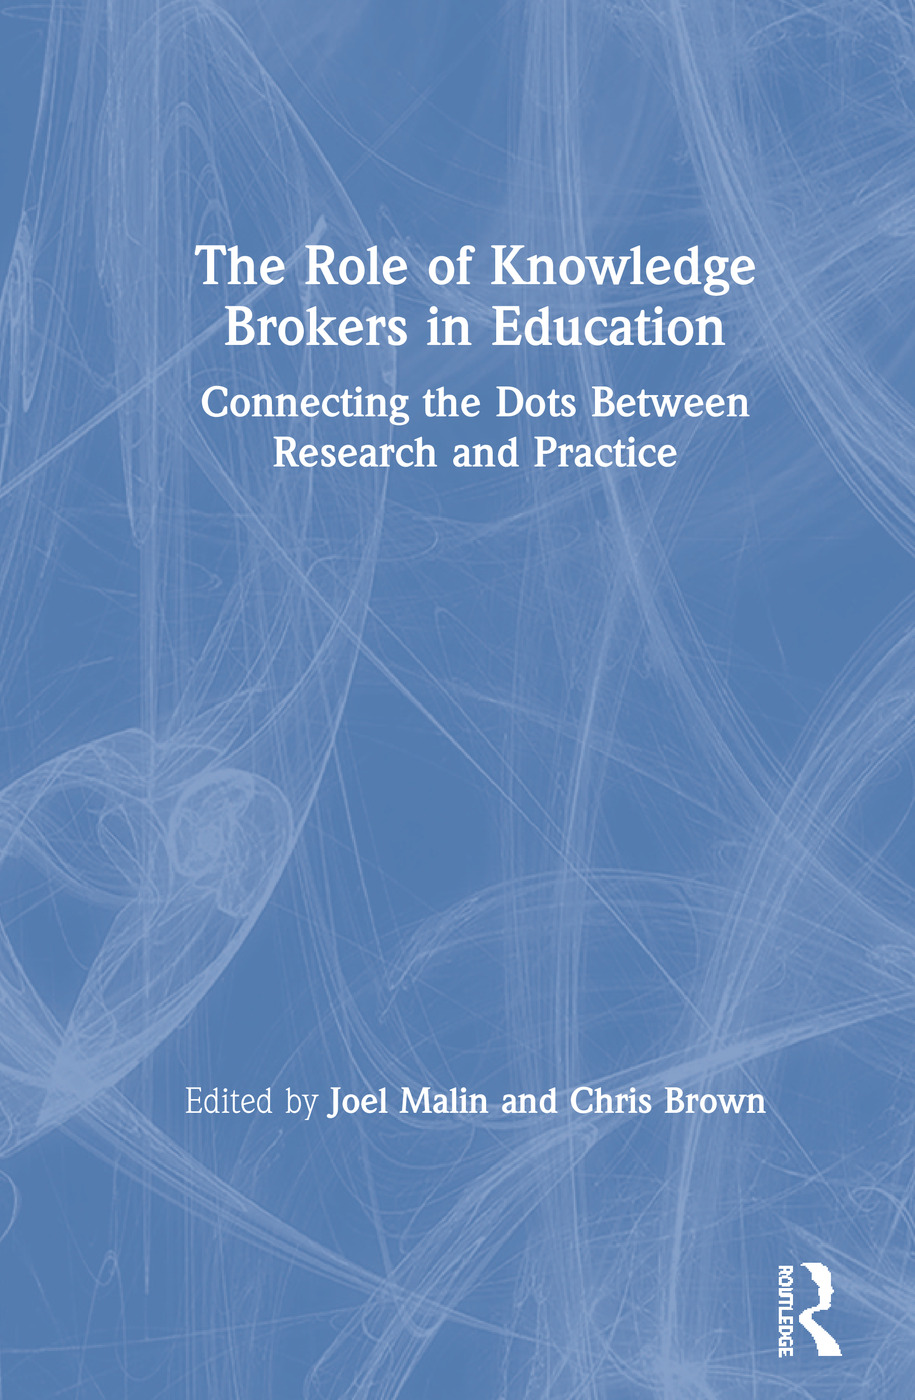 The Role of Knowledge Brokers in Education: Connecting the Dots Between Research and Practice book cover